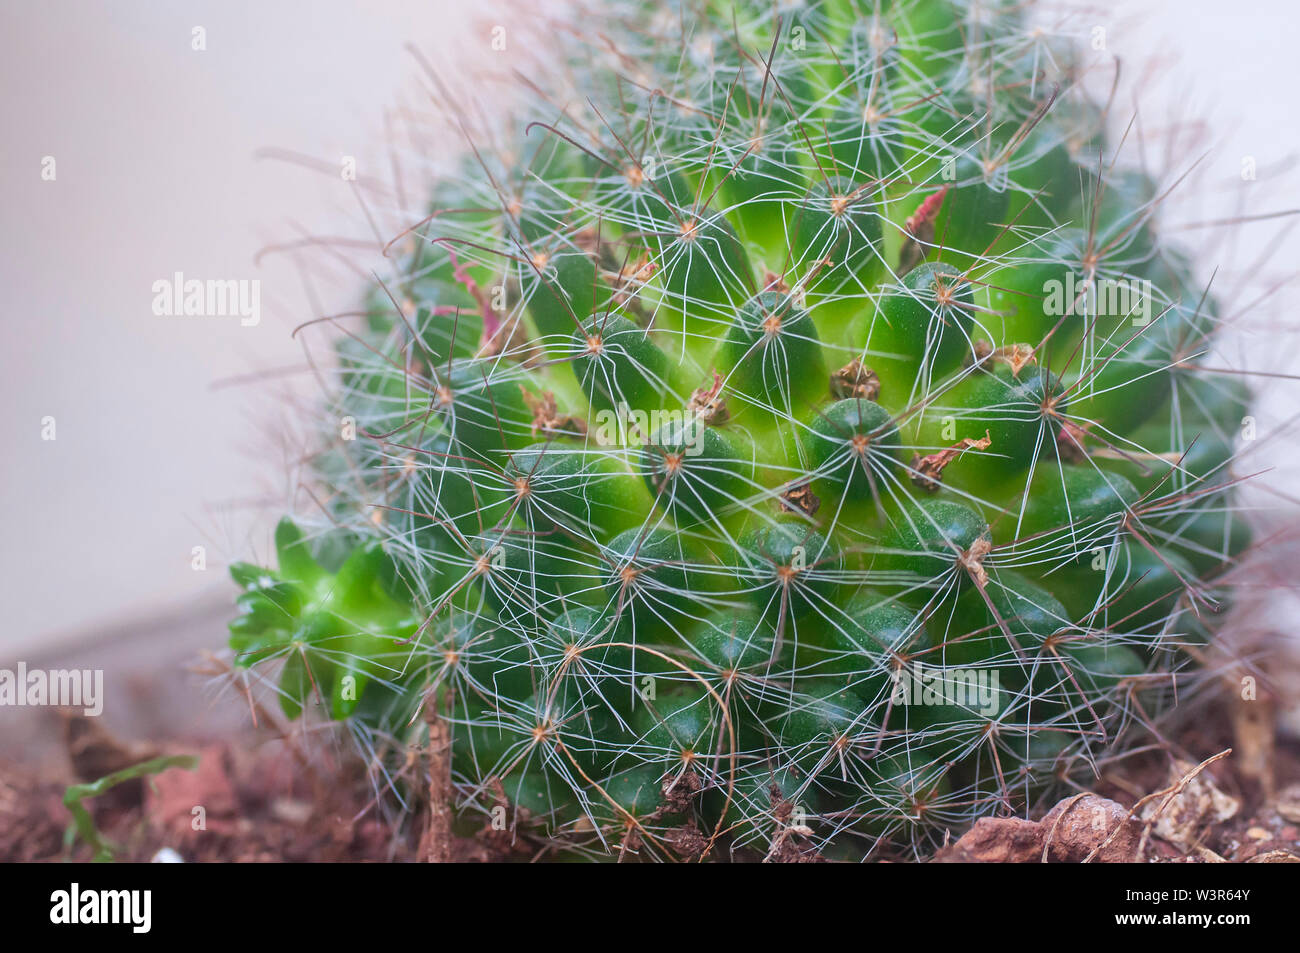 Vegetative Propagation High Resolution Stock Photography And Images Alamy